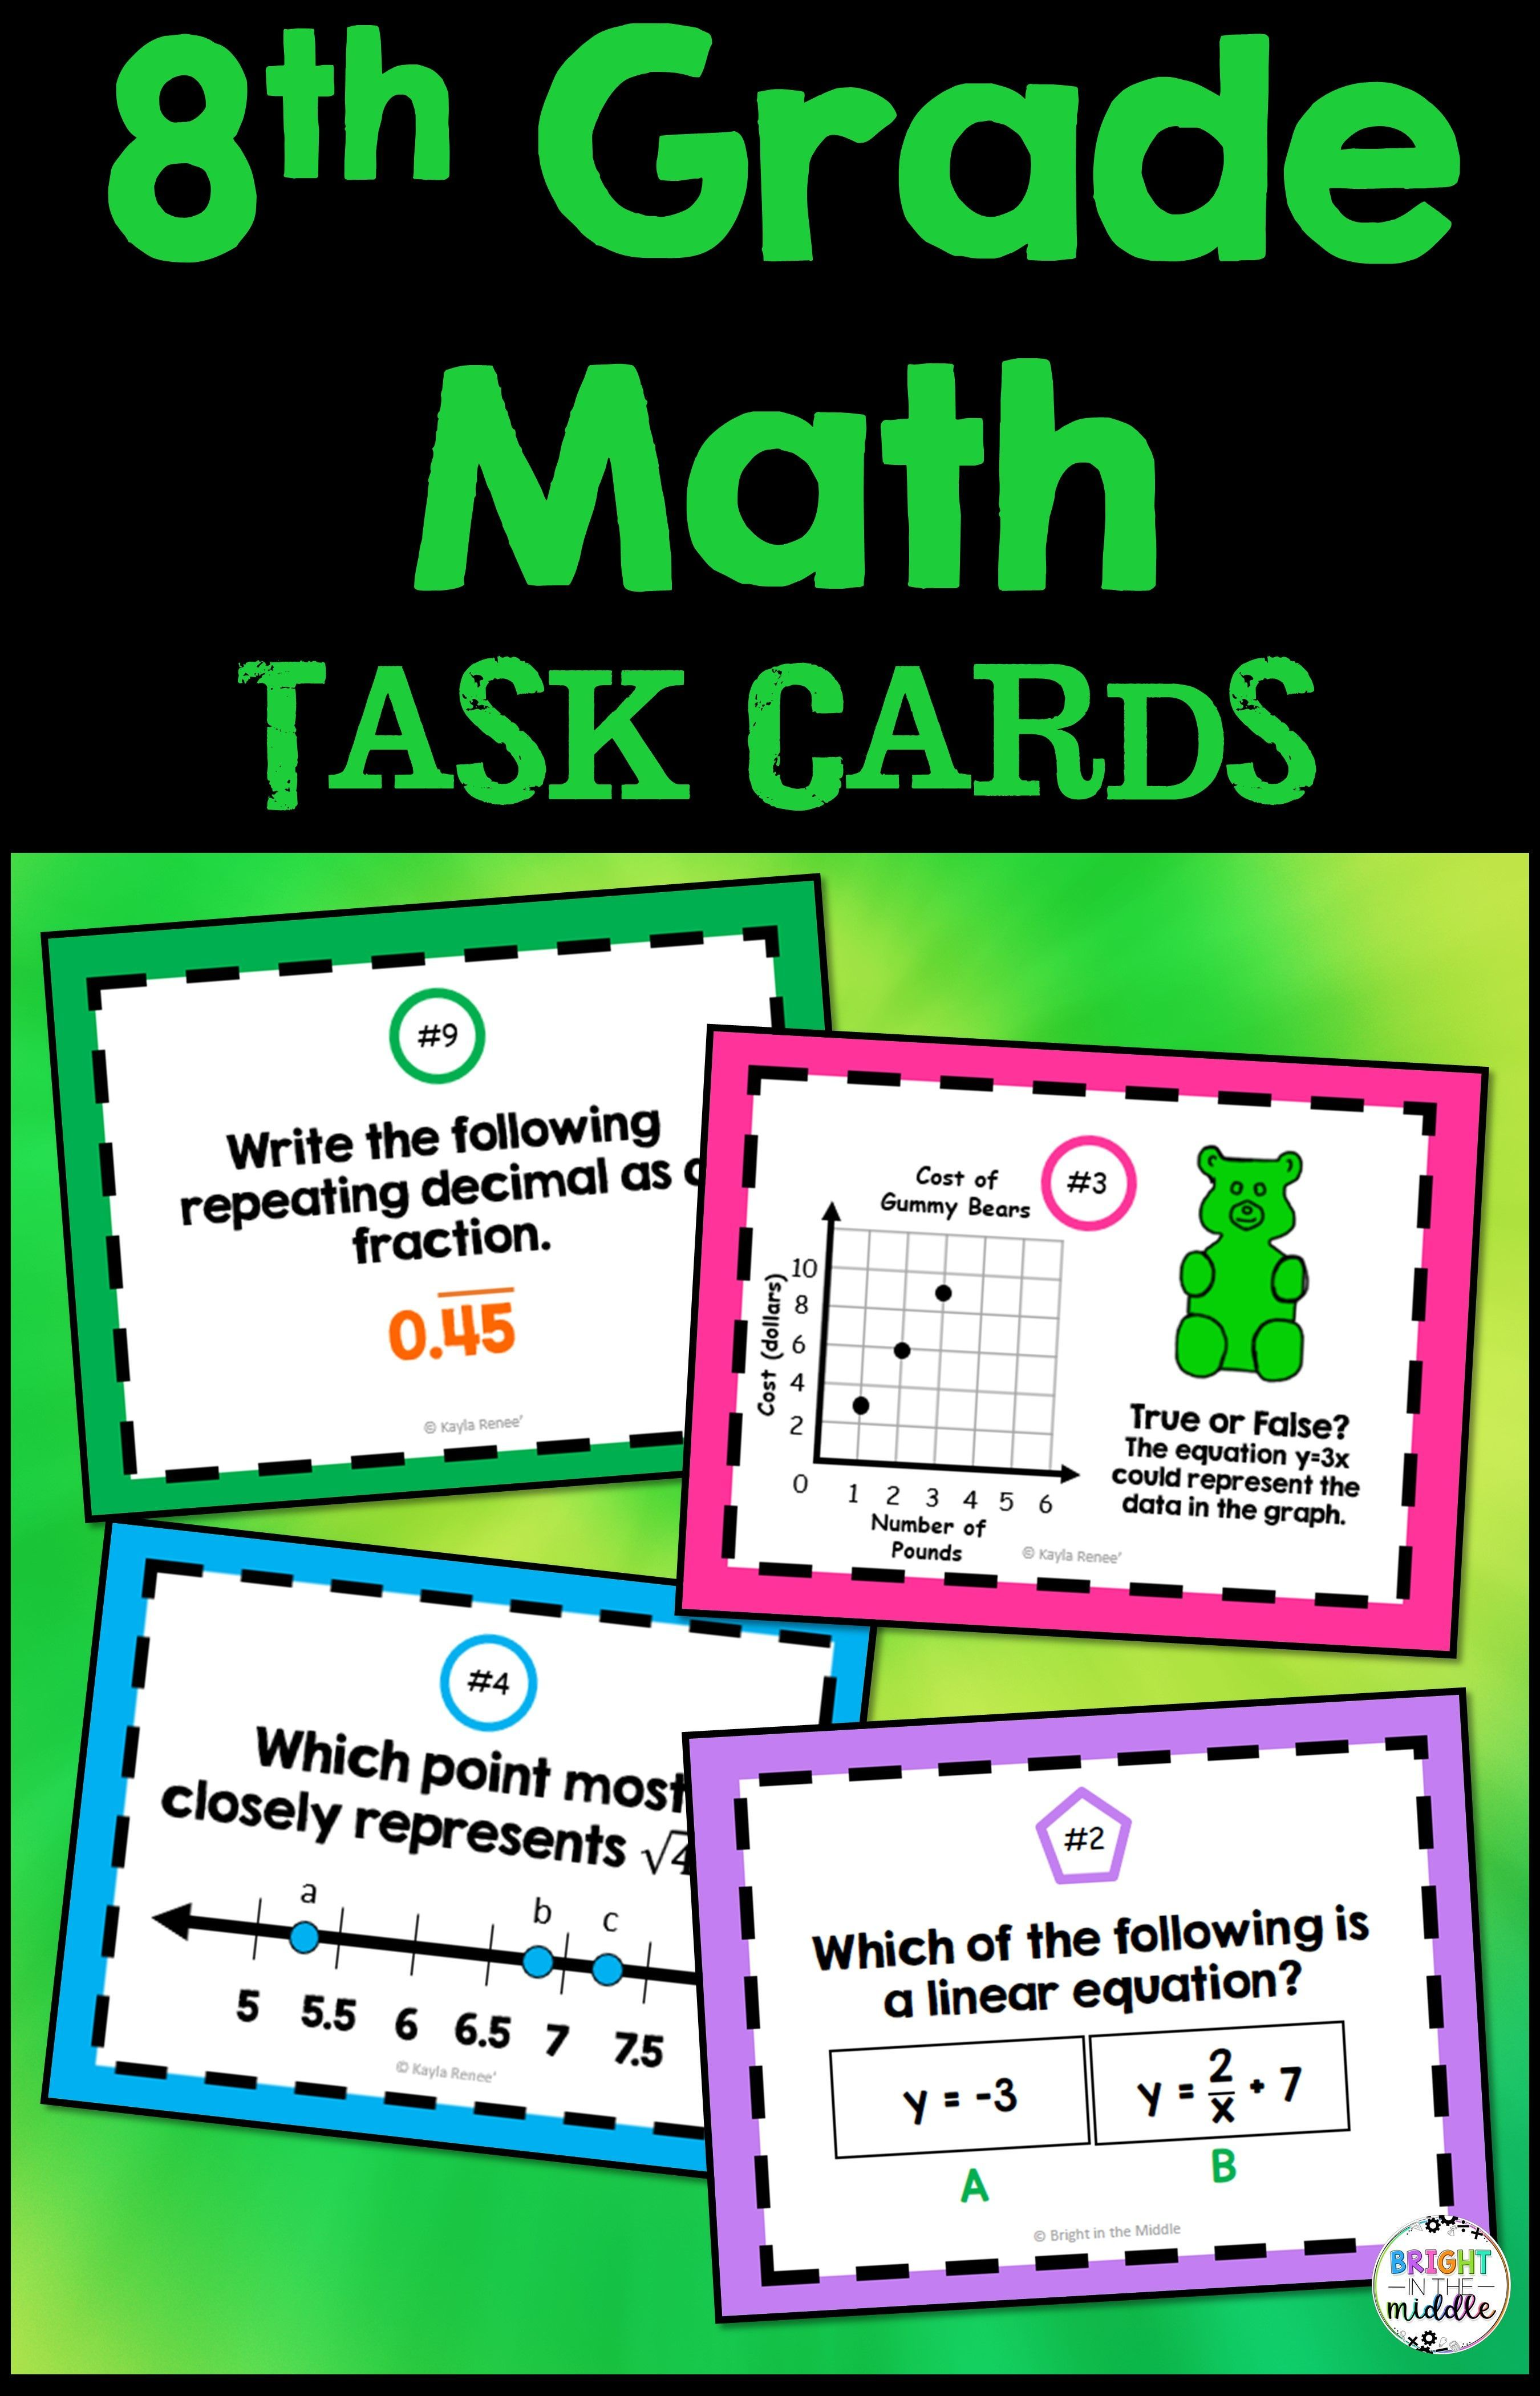 8th Grade Math Task Cards Growing Bundle In 2020 8th Grade Math Math Task Cards Math Tasks [ 4200 x 2700 Pixel ]